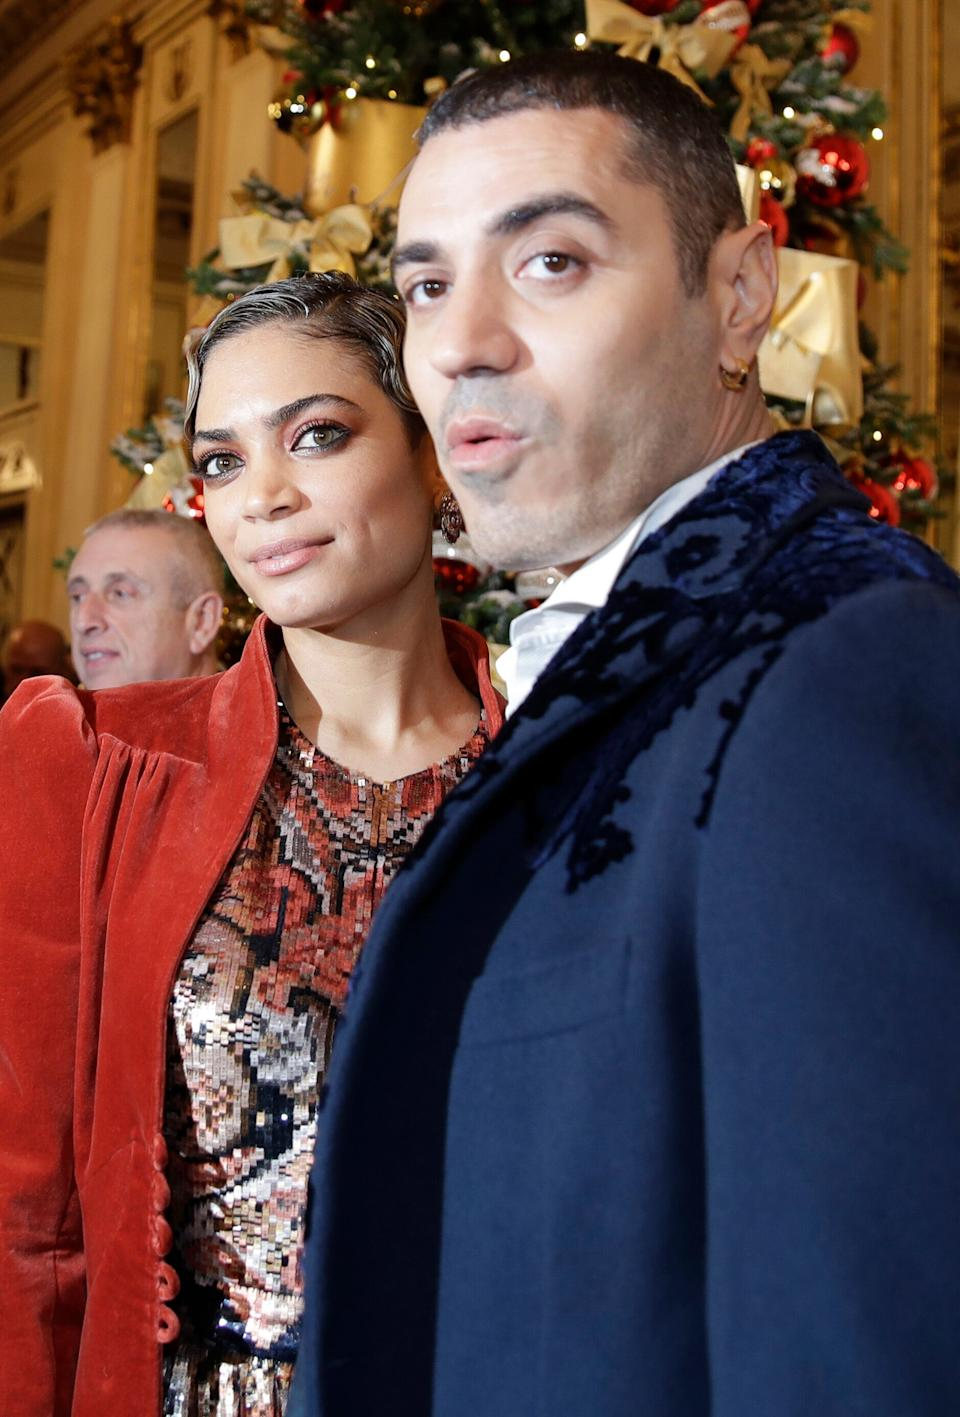 """Rapper Marracash is flanked by his partner singer Elodie as they arrive for the gala premiere of La Scala opera house, in Milan, Italy, Saturday, Dec. 7, 2019. Milan's storied La Scala opens its 2019-2020 season on Saturday with Puccini's """"Tosca,"""" which stars Russian soprano Anna Netrebko as the object of unwanted sexual attention from a powerful authority figure. (AP Photo/Luca Bruno) (Photo: ASSOCIATED PRESS)"""